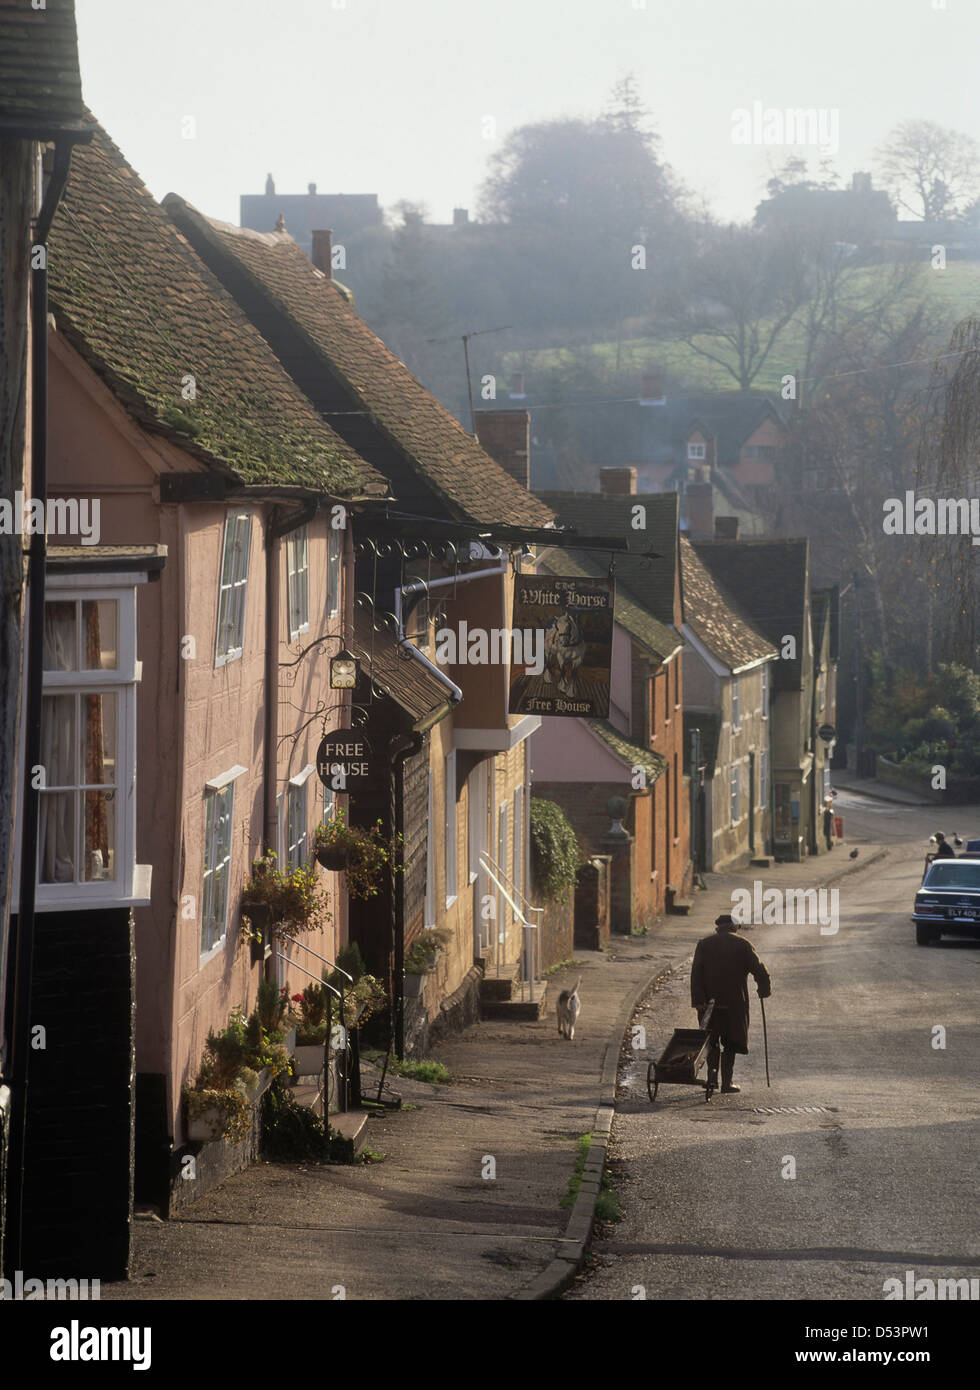 Old man with his dog walking down the main street in Kersey village, Suffolk, UK. Circa 1980 - Stock Image